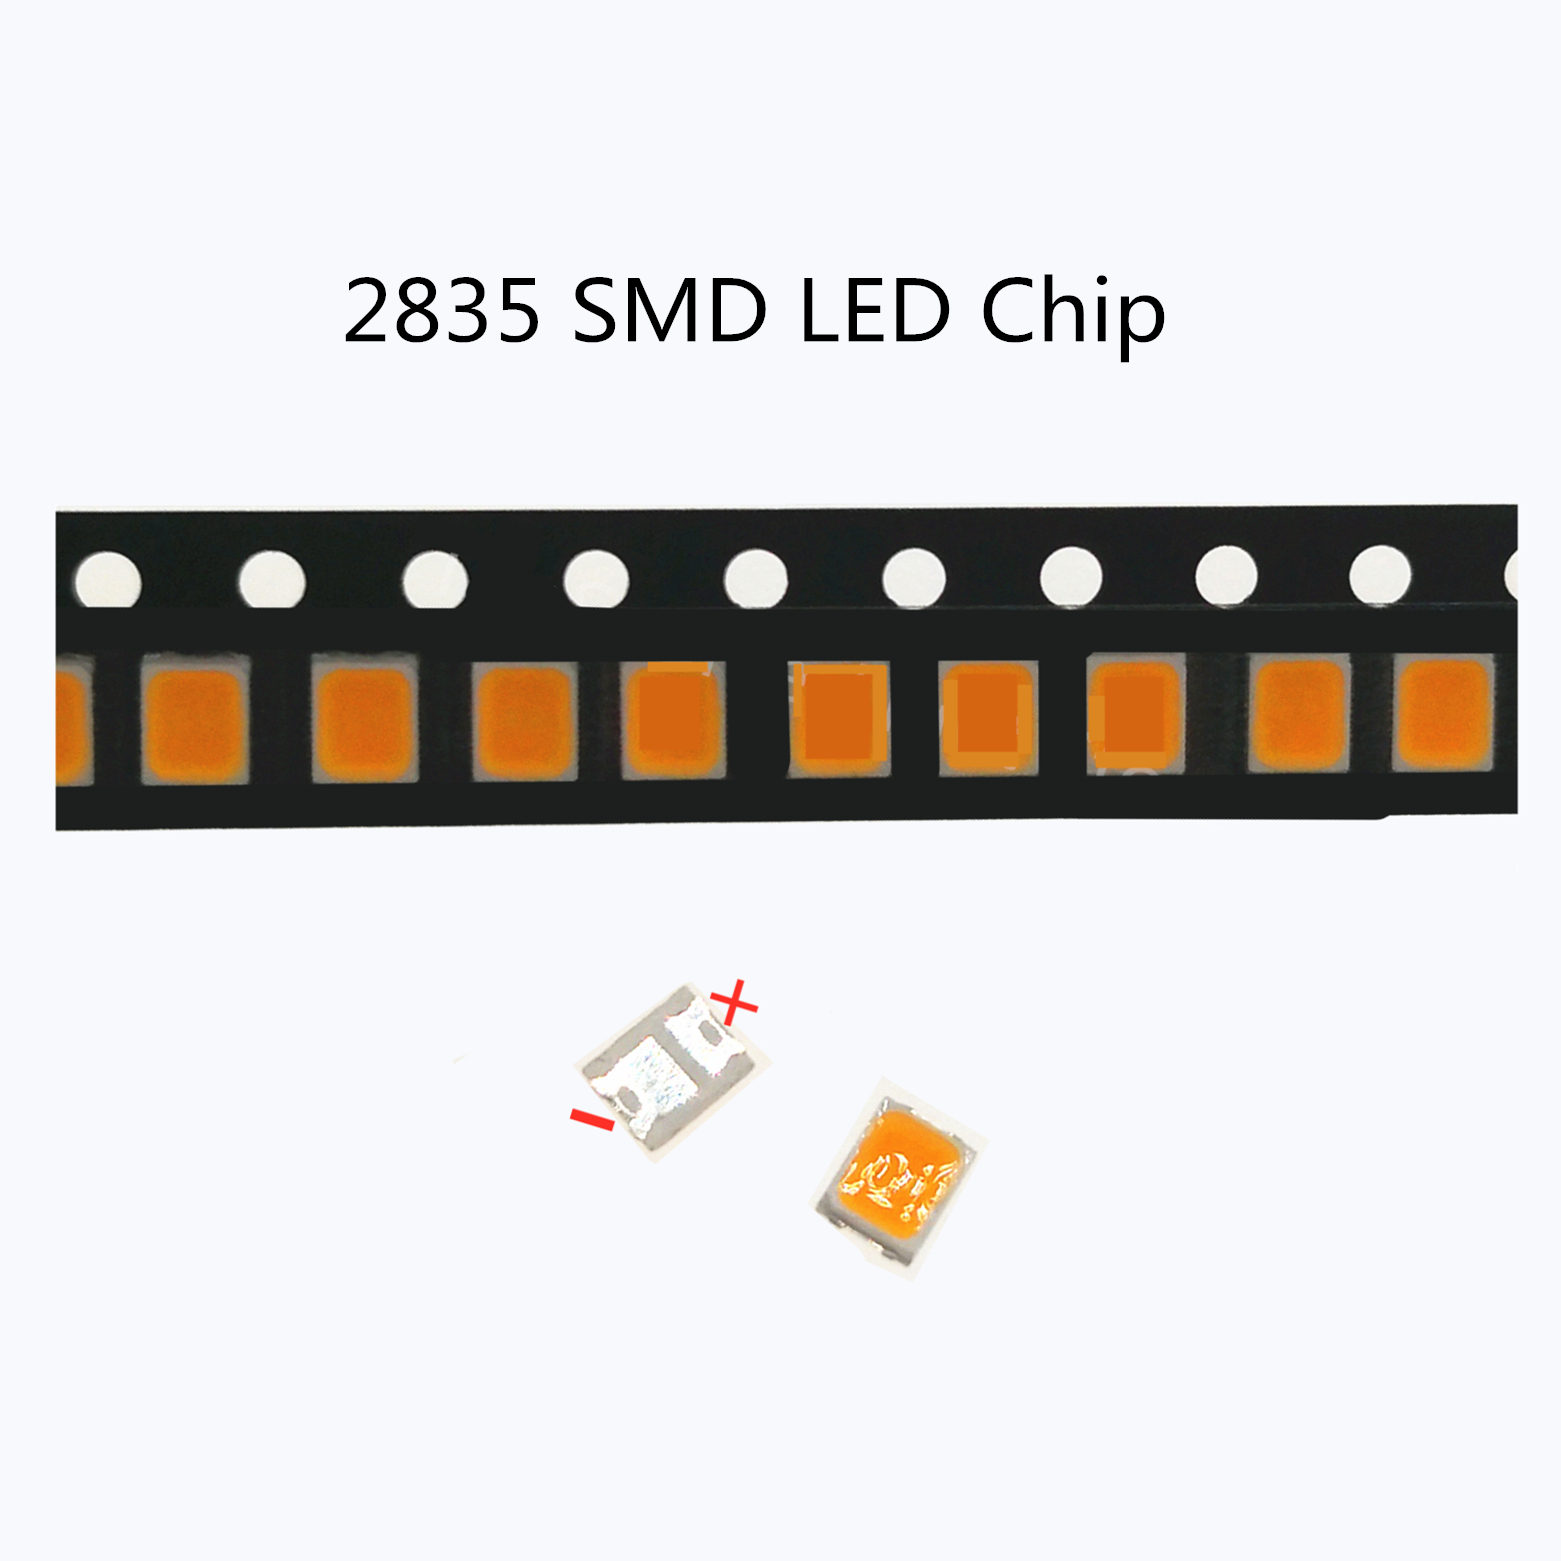 50-1000pcs 120l-130LM <font><b>LED</b></font> Backlight 1210 3528 <font><b>2835</b></font> 3V 6V 9V 18V 1W cold white 9500K -11000K For <font><b>LG</b></font> Innotek LCD Backlight <font><b>LED</b></font> TV image